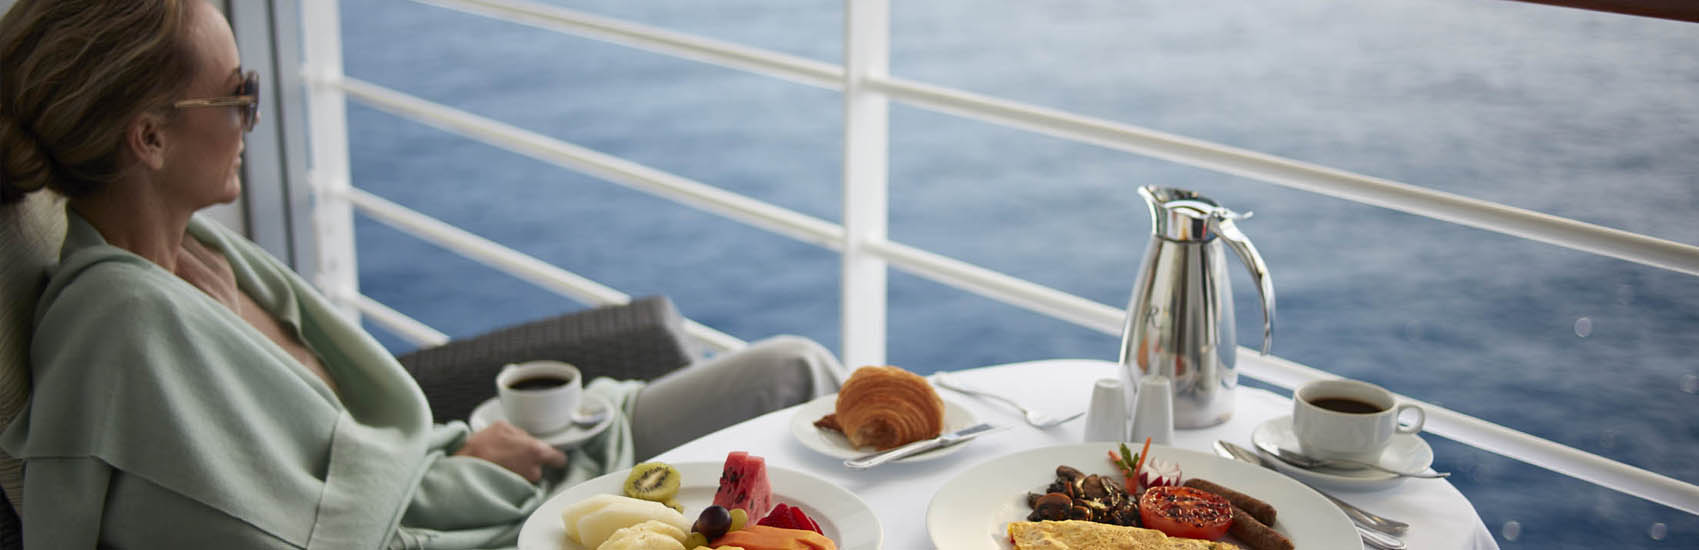 Enjoy roundtrip Airfare* and your choice of additional bonus amenities with Oceania Cruises! 1